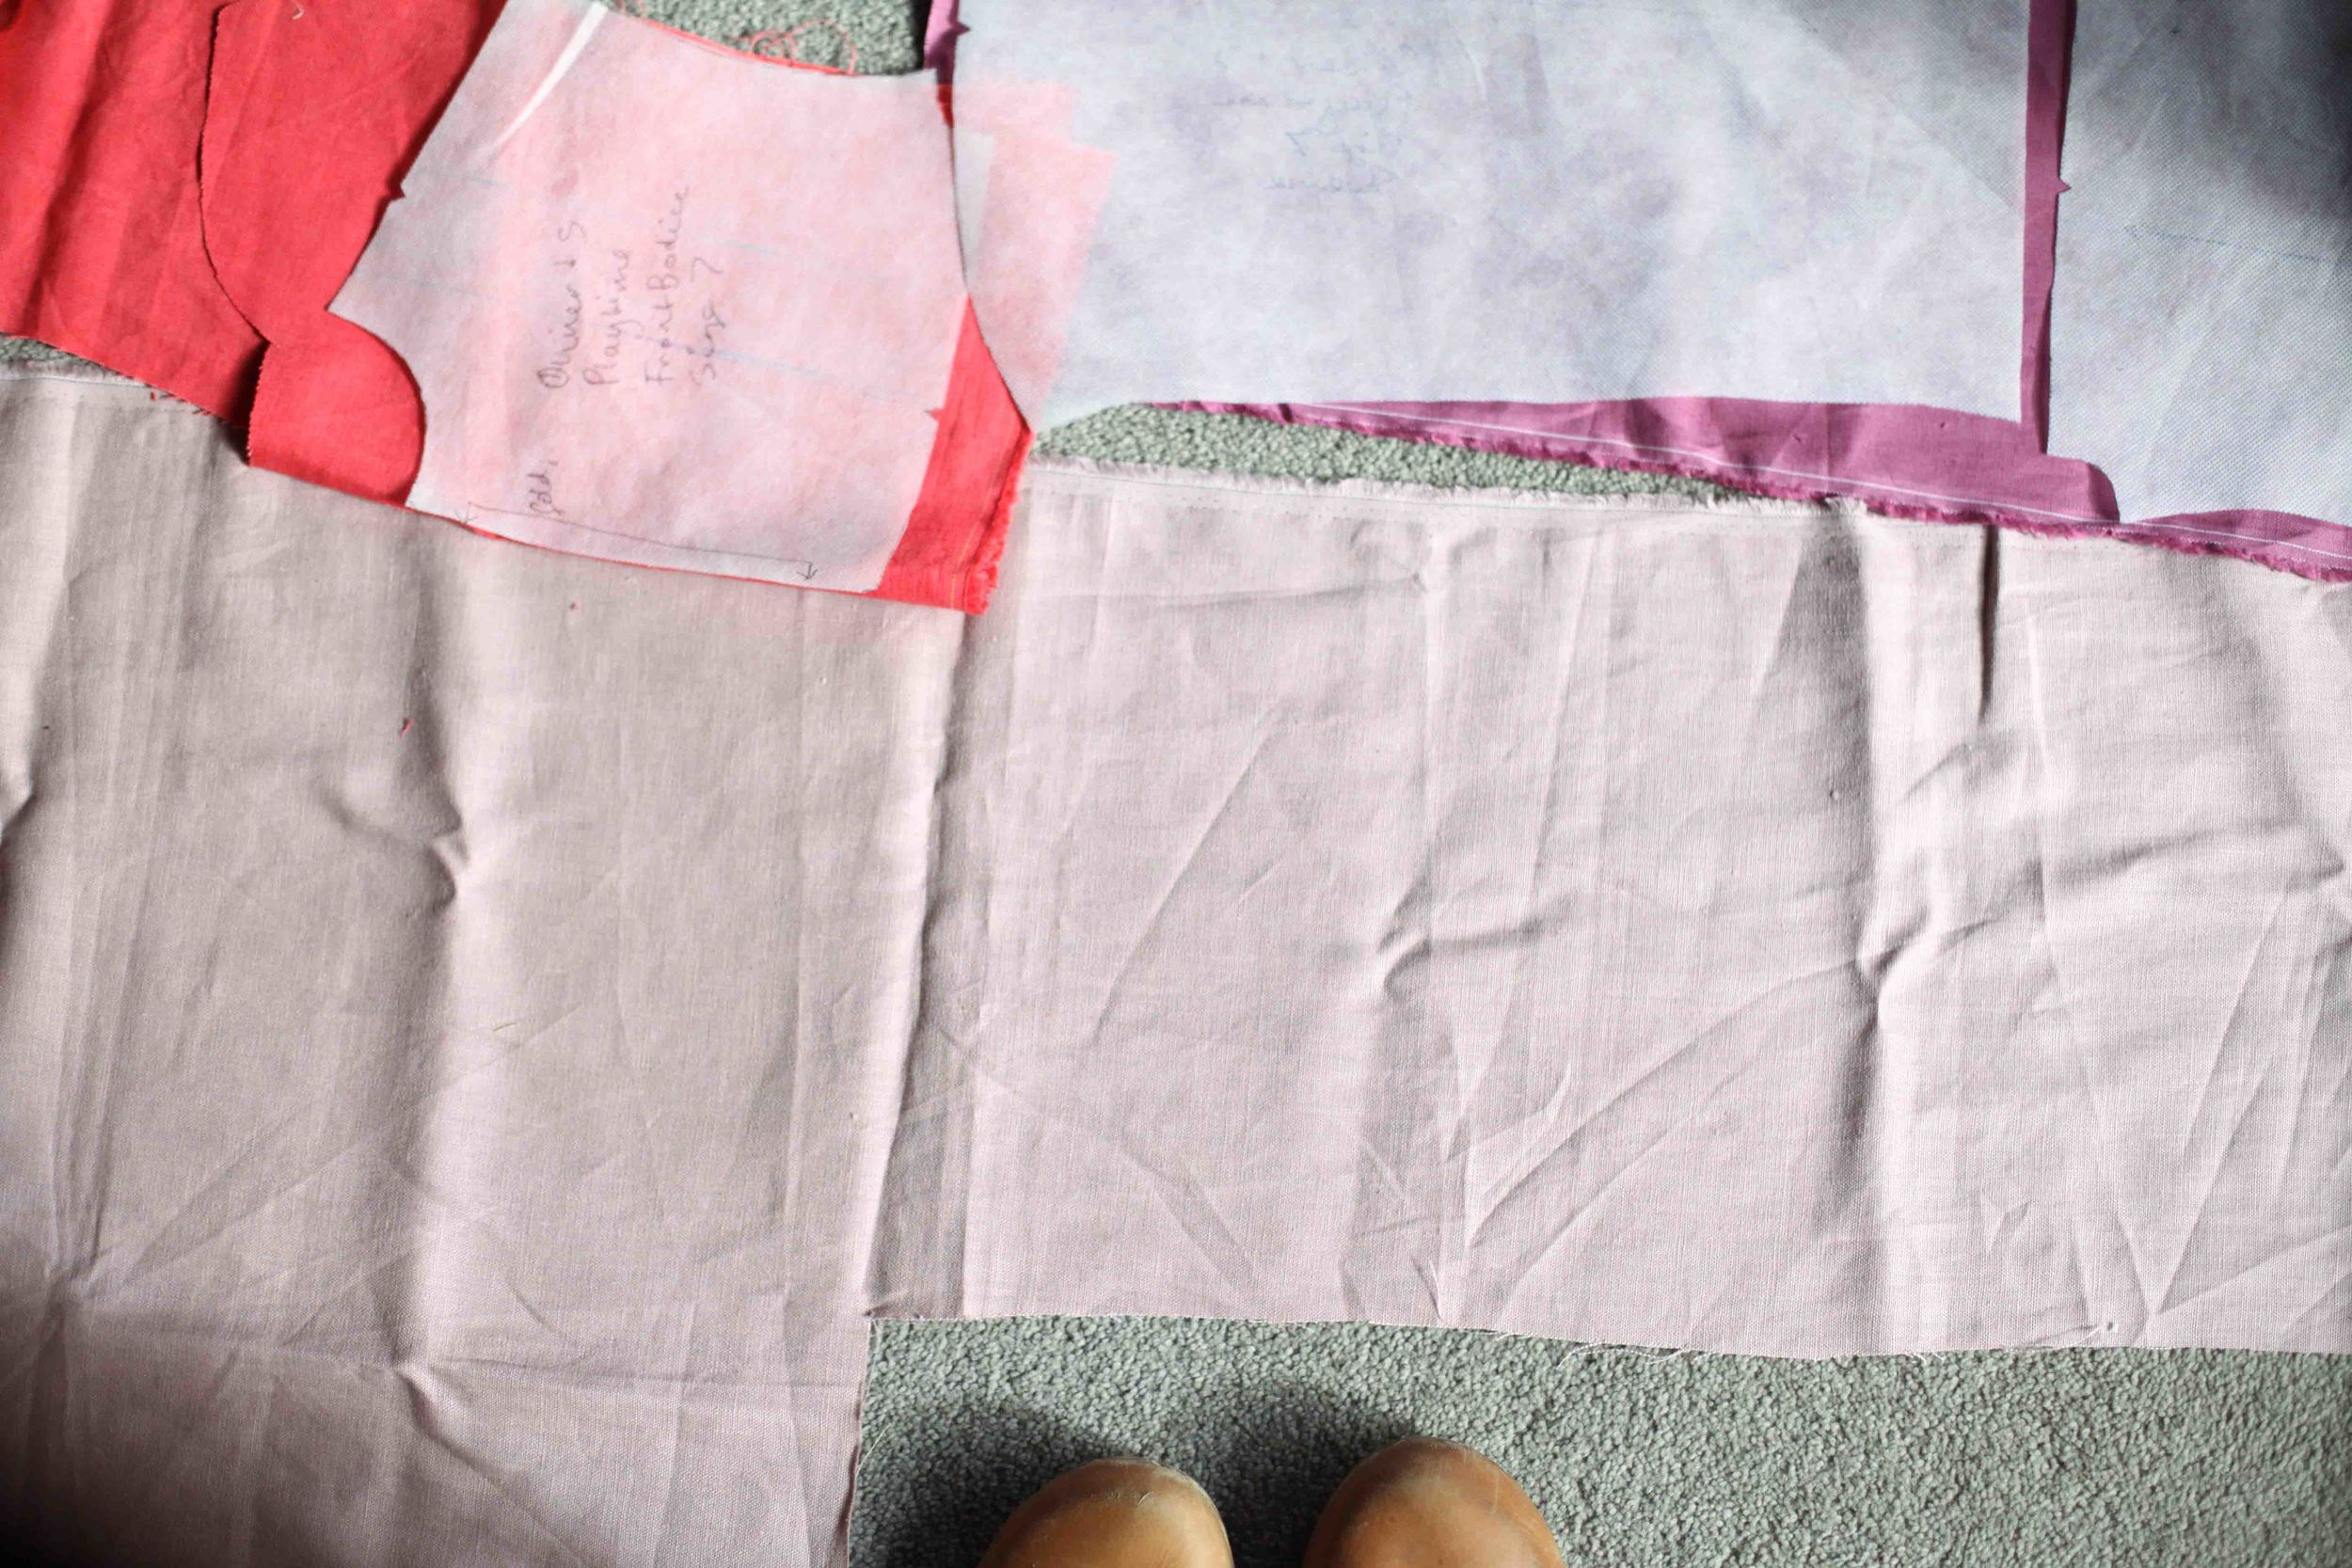 A photo of me trying to get all the pattern pieces to fit onto my scraps to make a scrap dress. You can see what the front turned out like below. One sleeve of the frock will be the light pink and the other the dark pink.